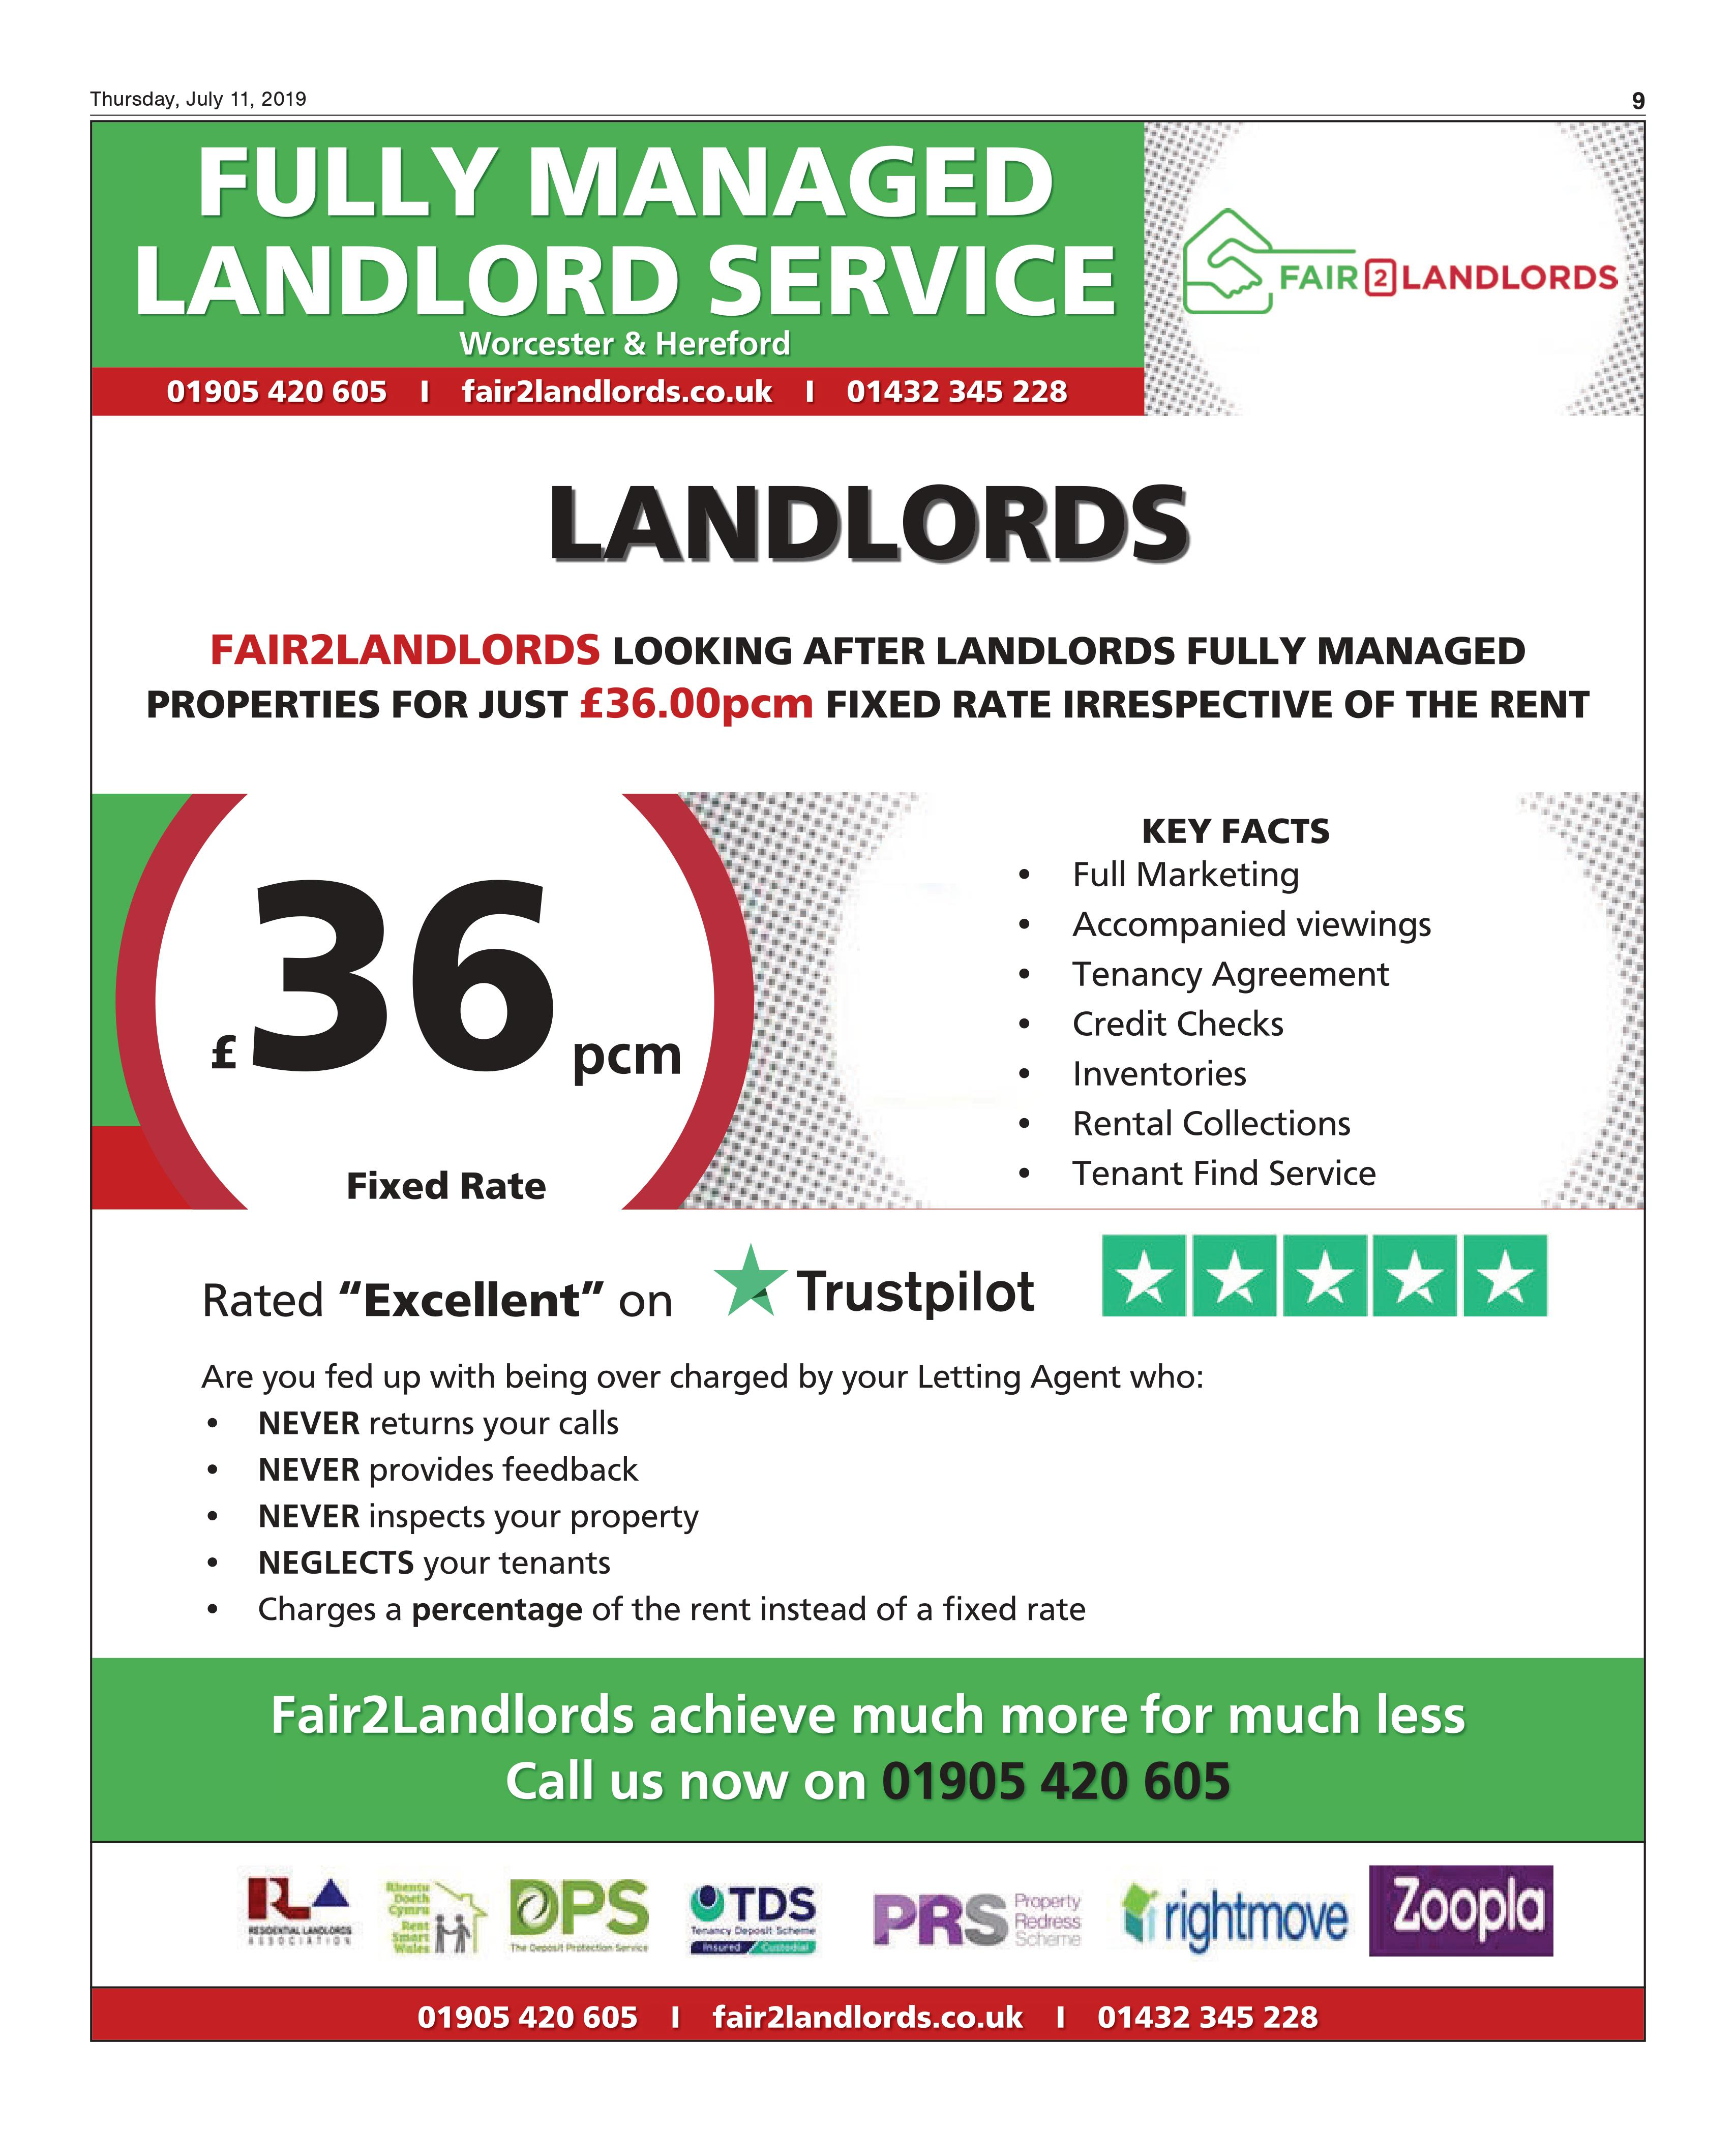 Fair2Landlords Looking after Landlords